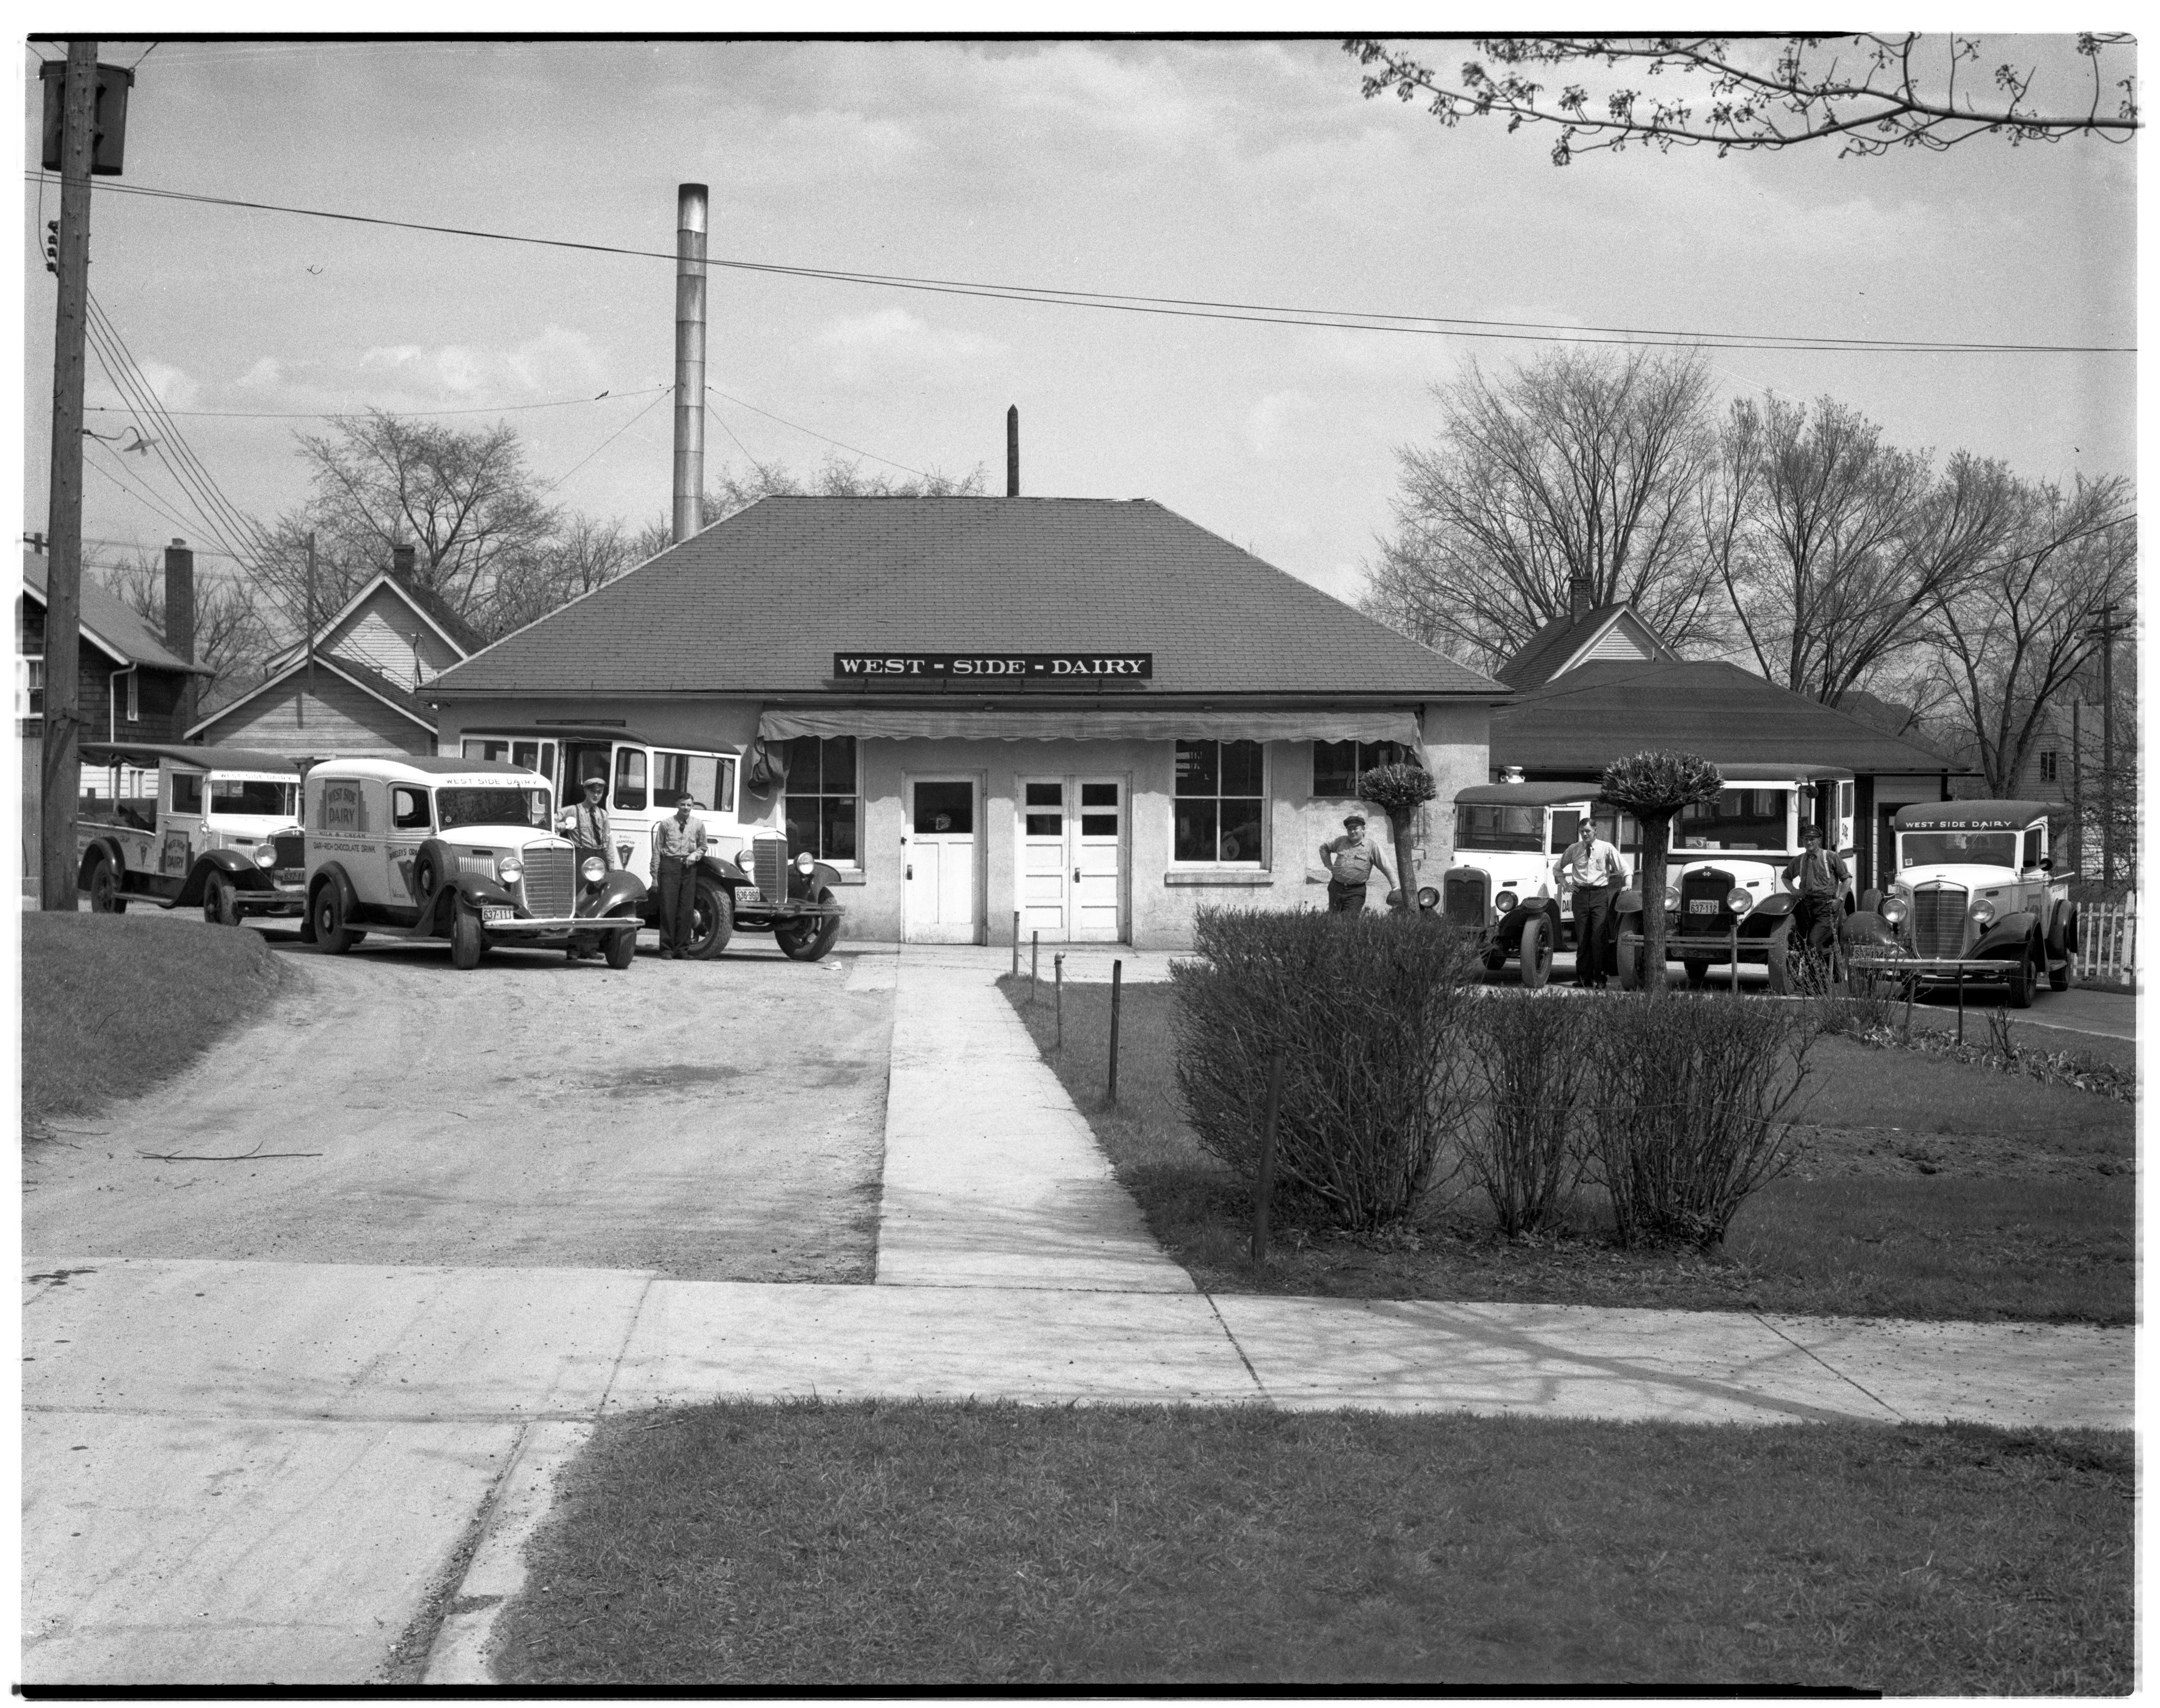 West Side Dairy, May 1936 image